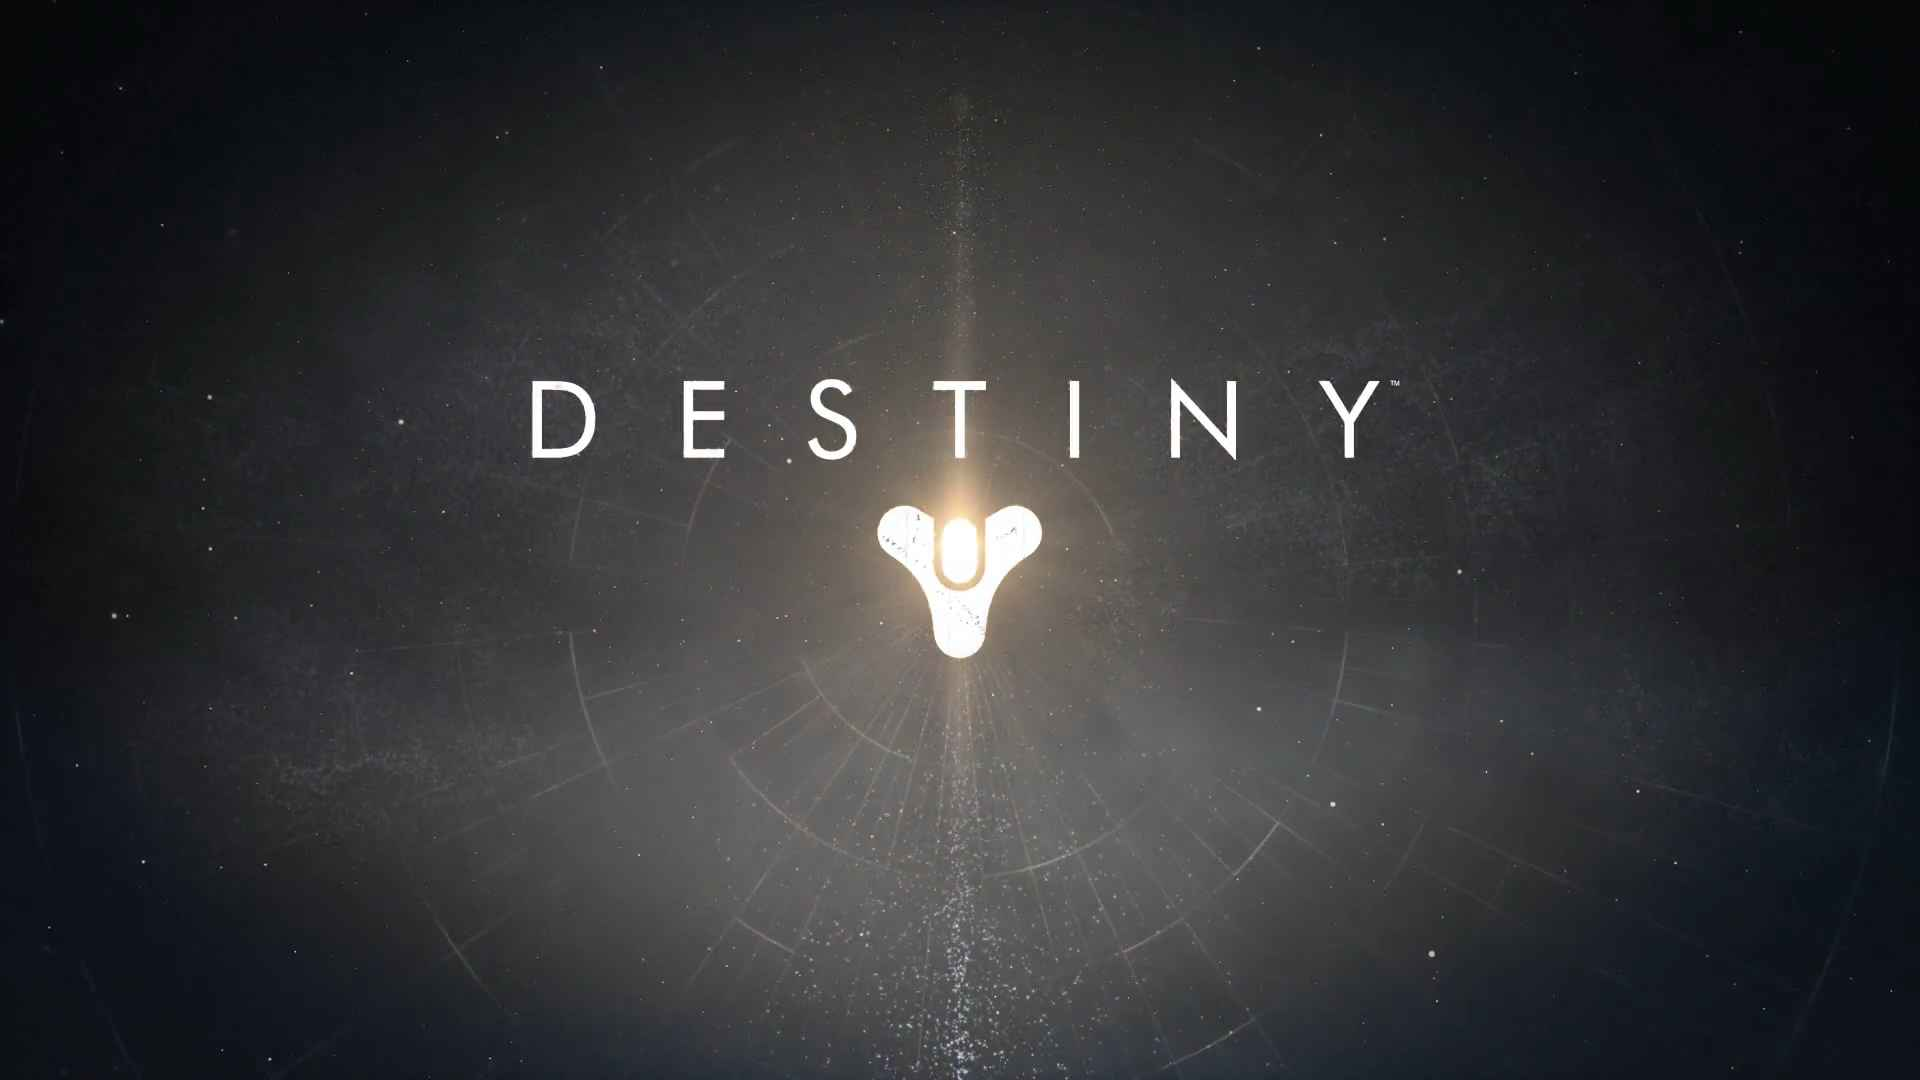 Destiny wallpaper bungie